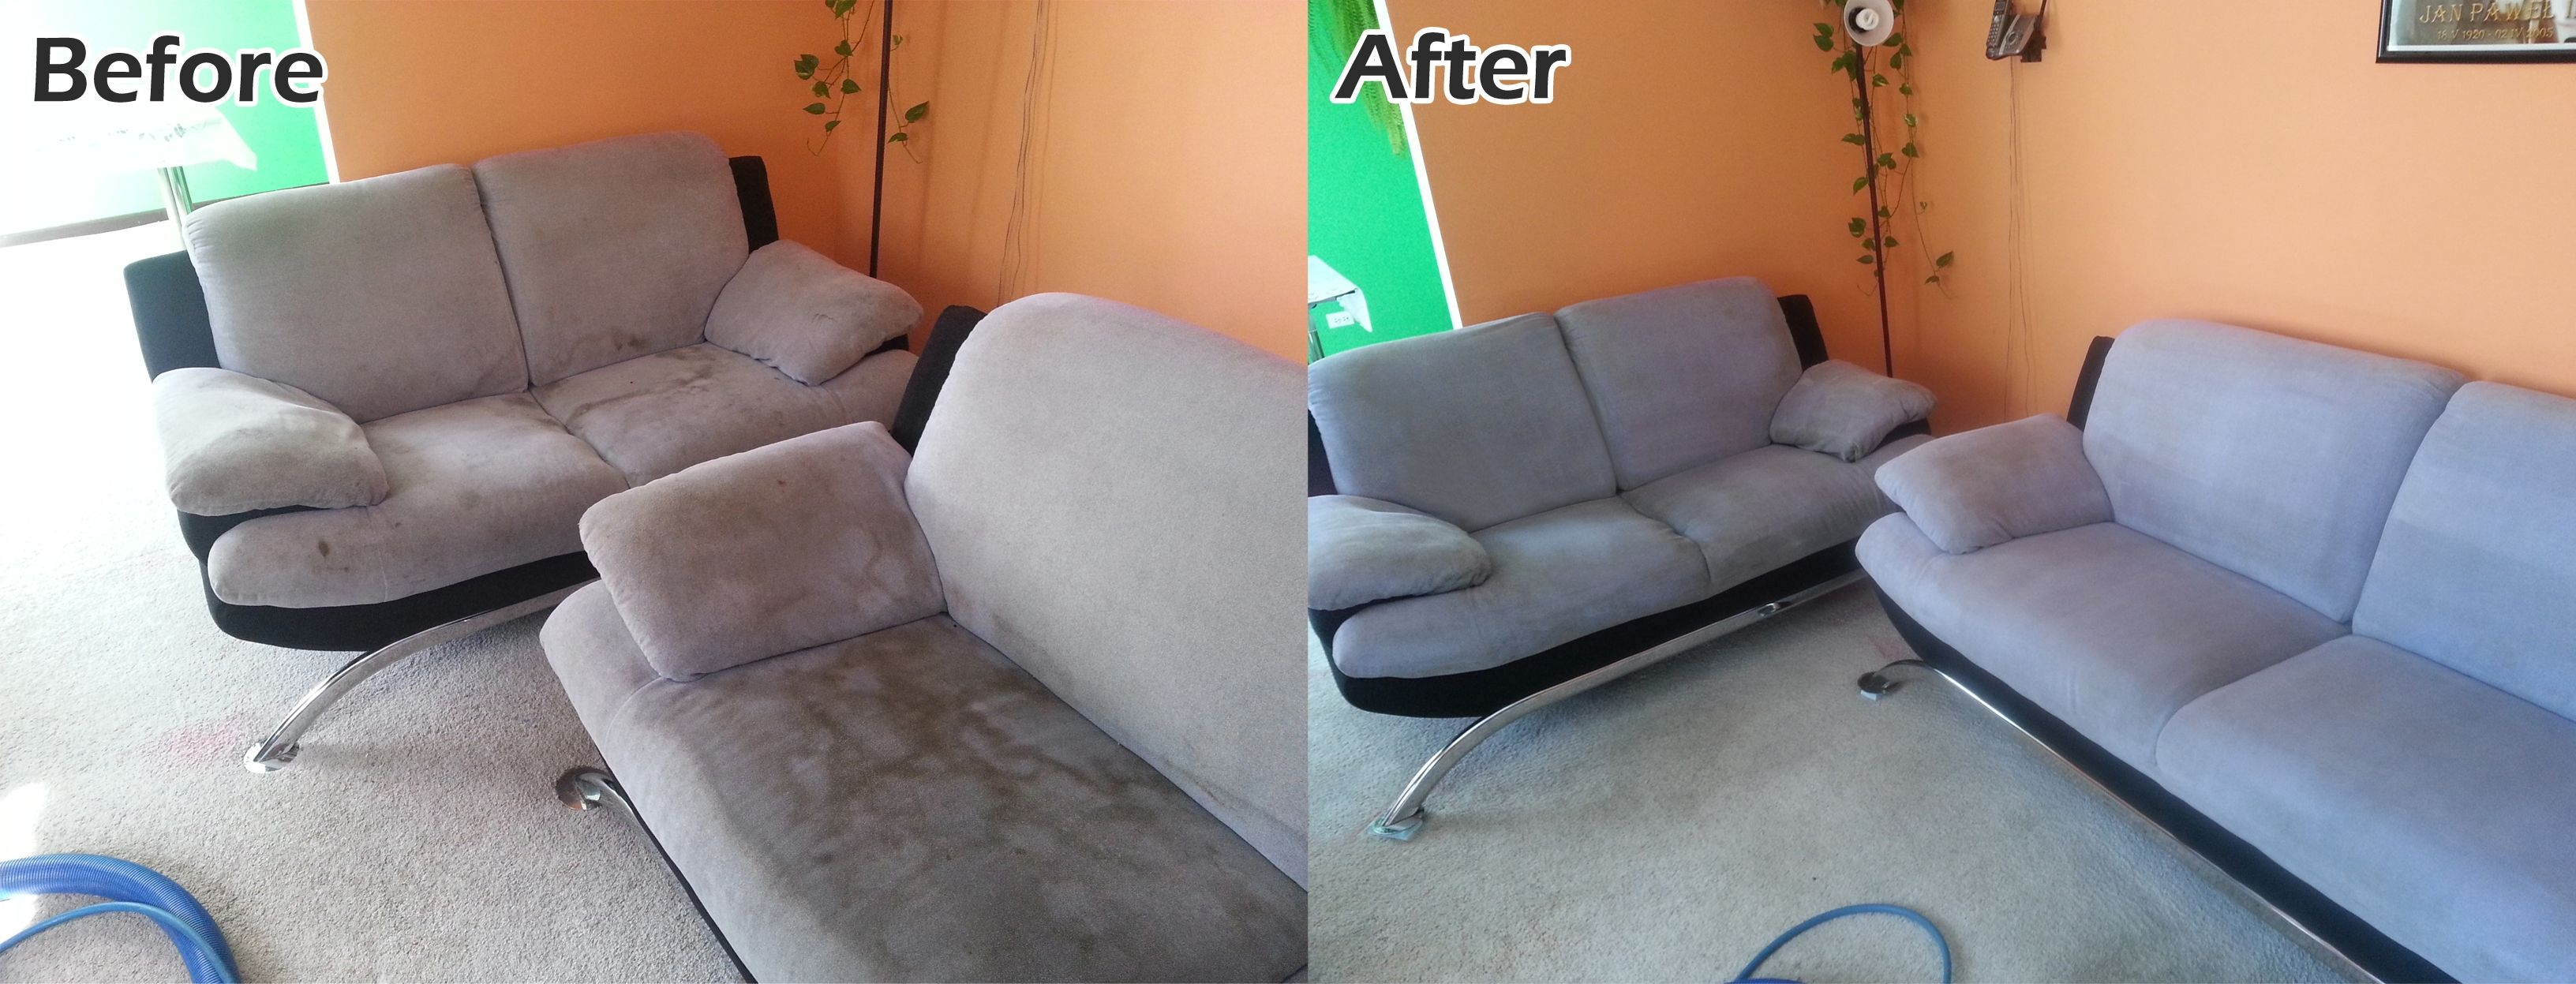 Washing Fabric Sofa Covers Sofa Cleaning Services Clean Sofa How To Clean Carpet